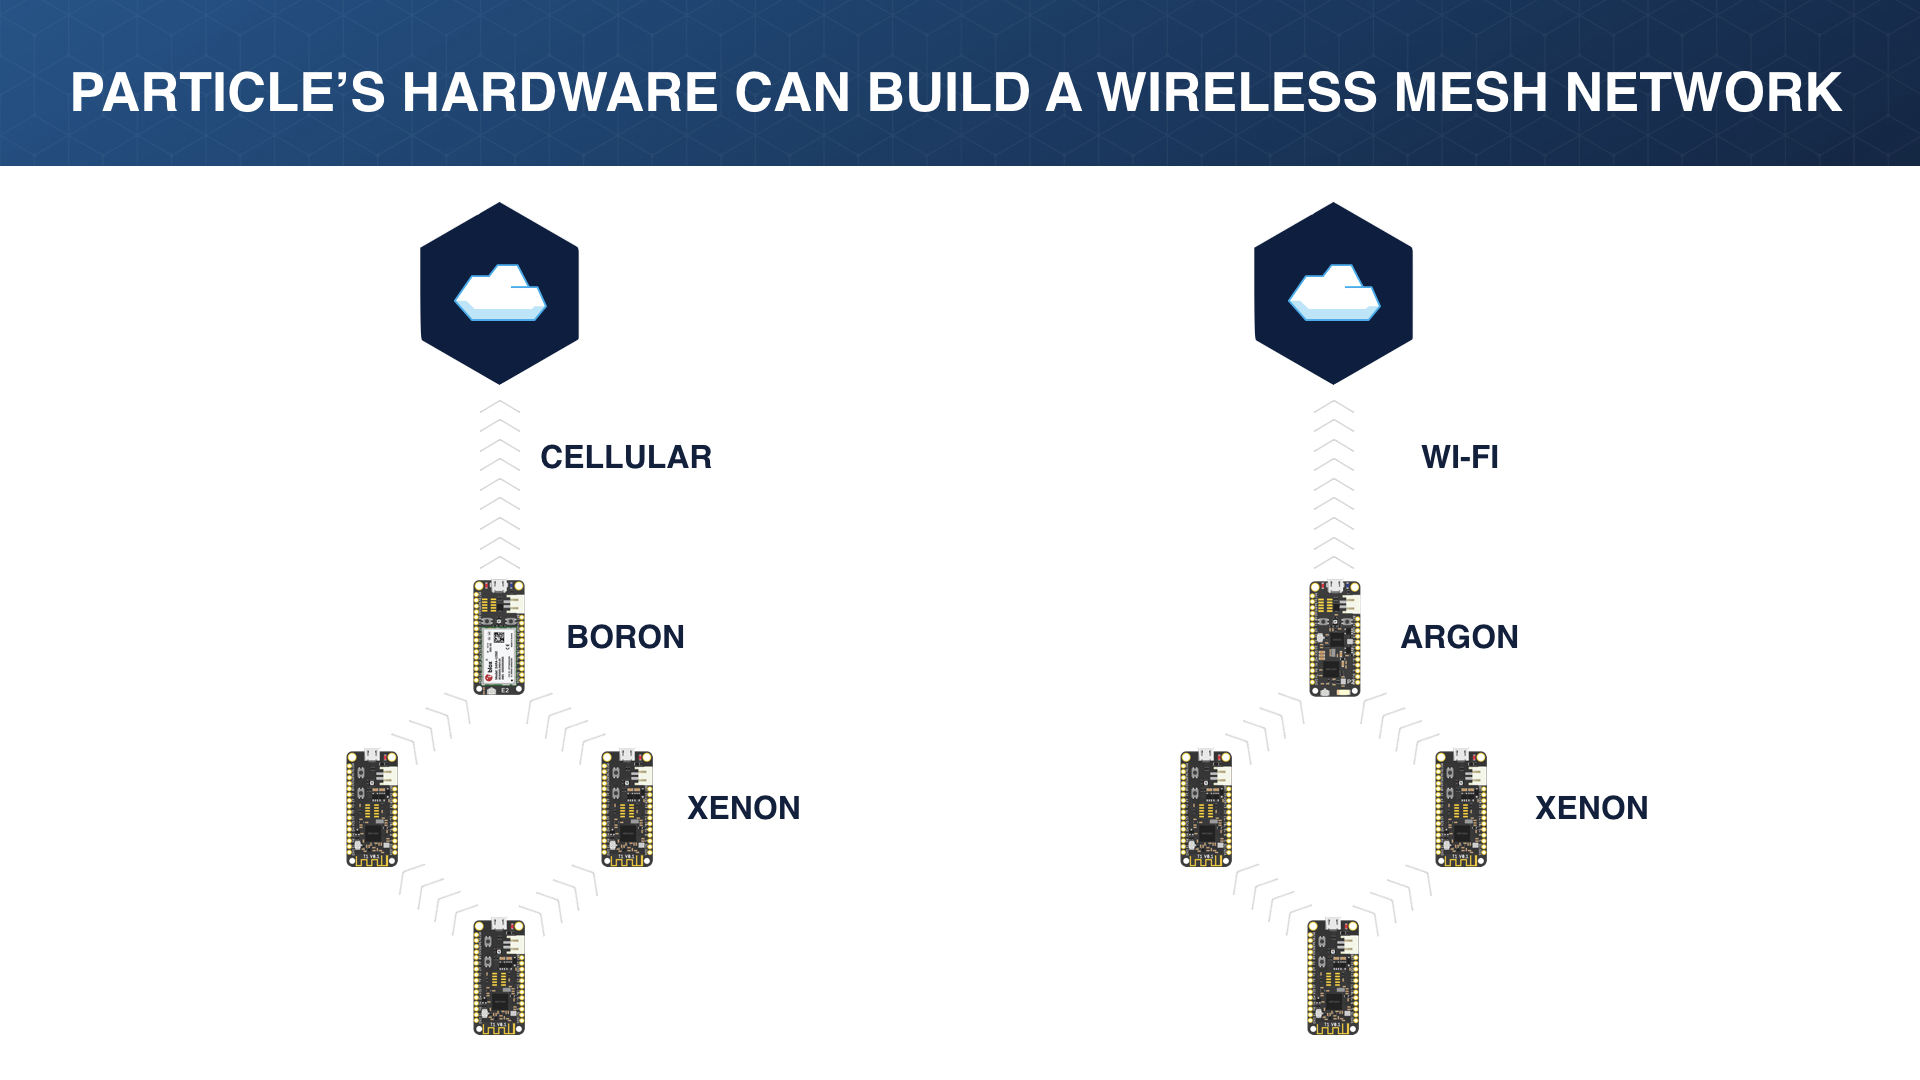 hight resolution of wireless mesh network particle hardware wireless mesh networks